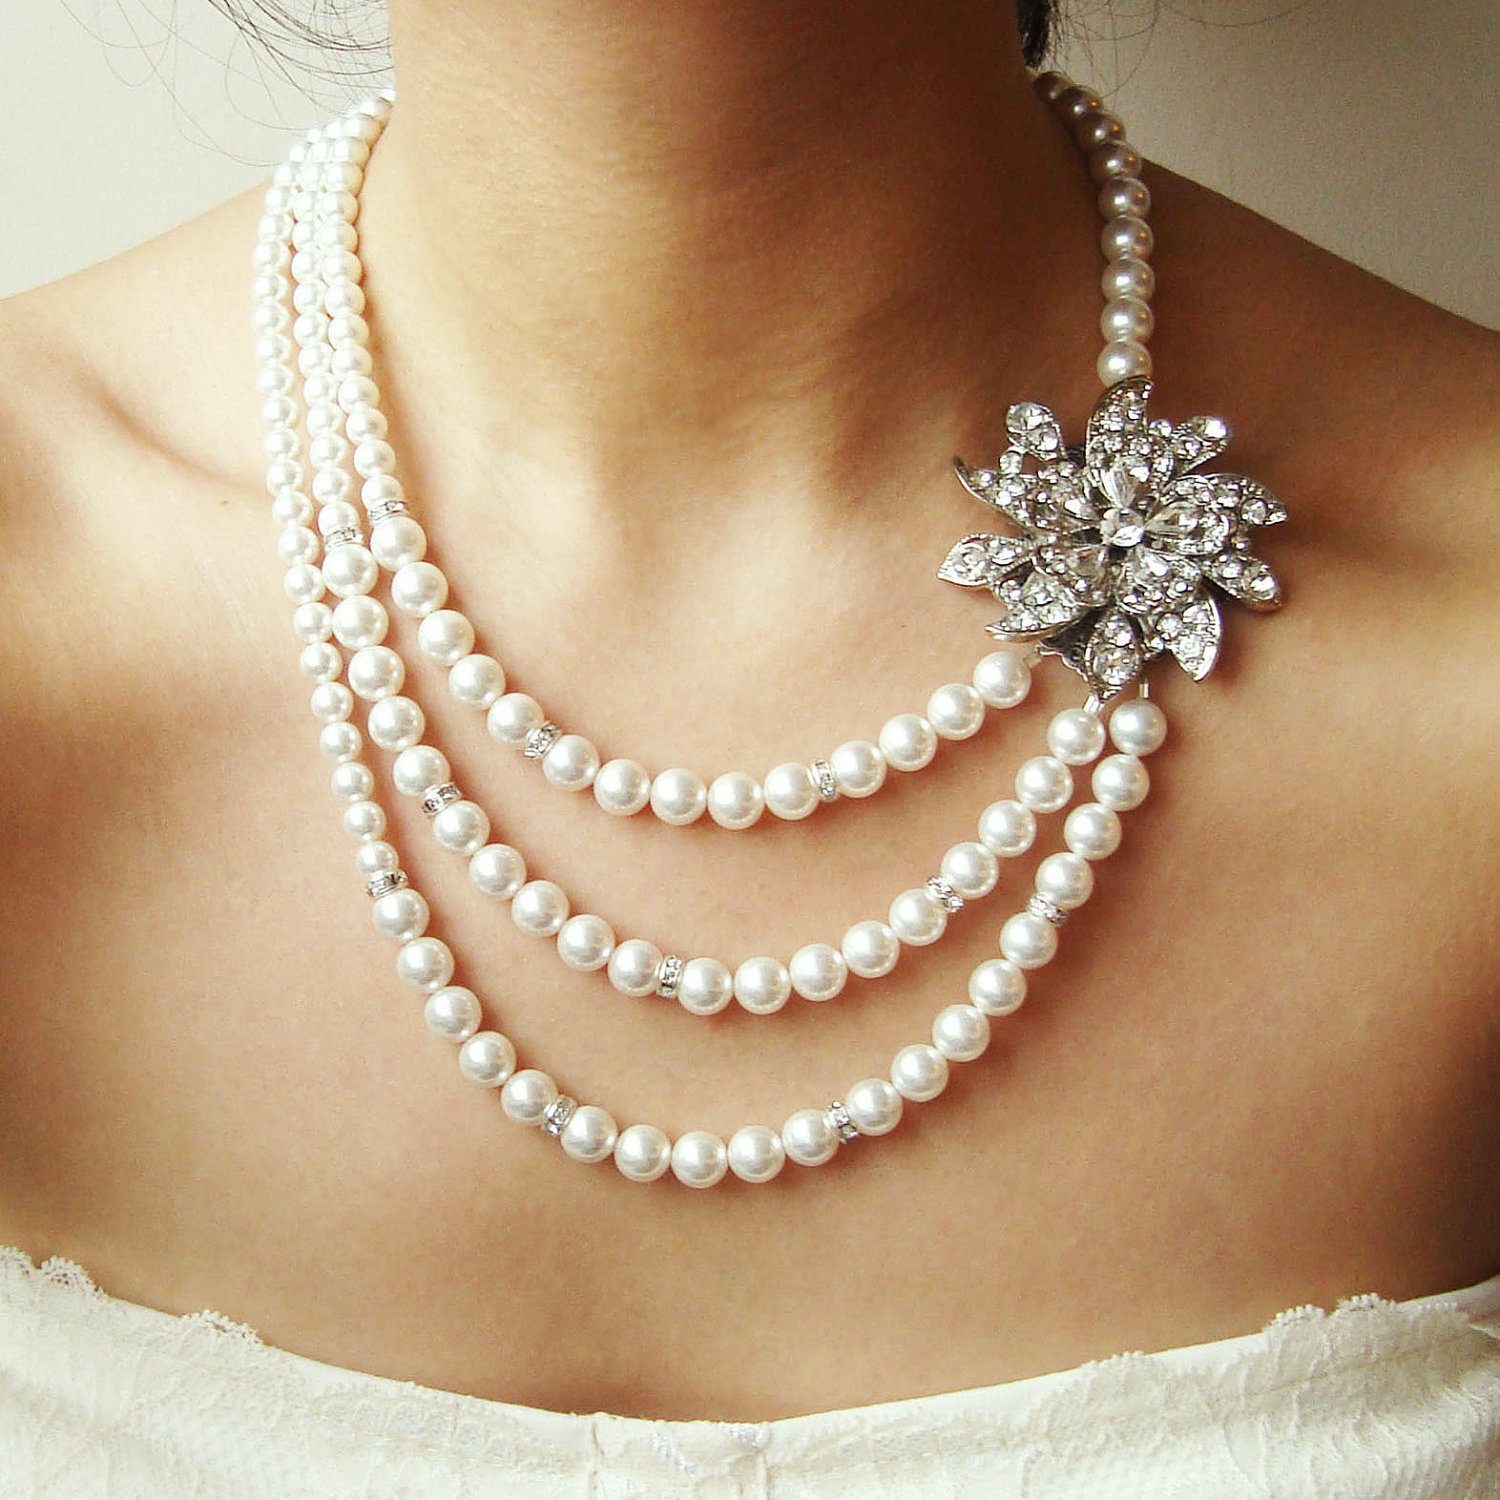 ae3a2724d ... of statement necklace, pearl necklace, fashion jewelry, earring, and  all body part jewelry. All the products are original and at very reasonable  cost.